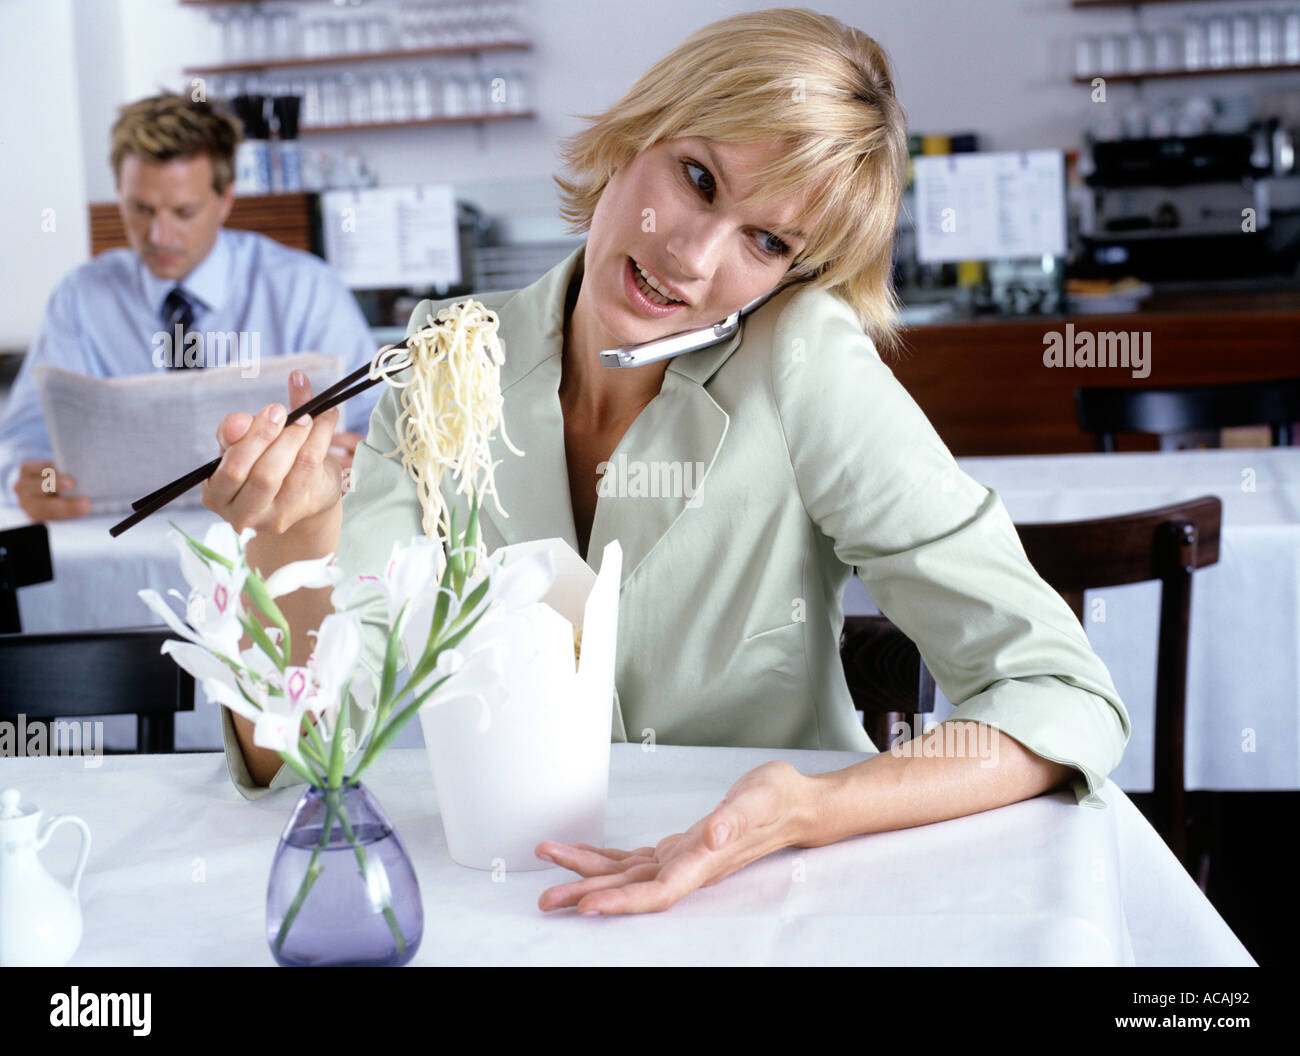 woman eating noodles while talking on mobile businessman reading paper in the background Stock Photo